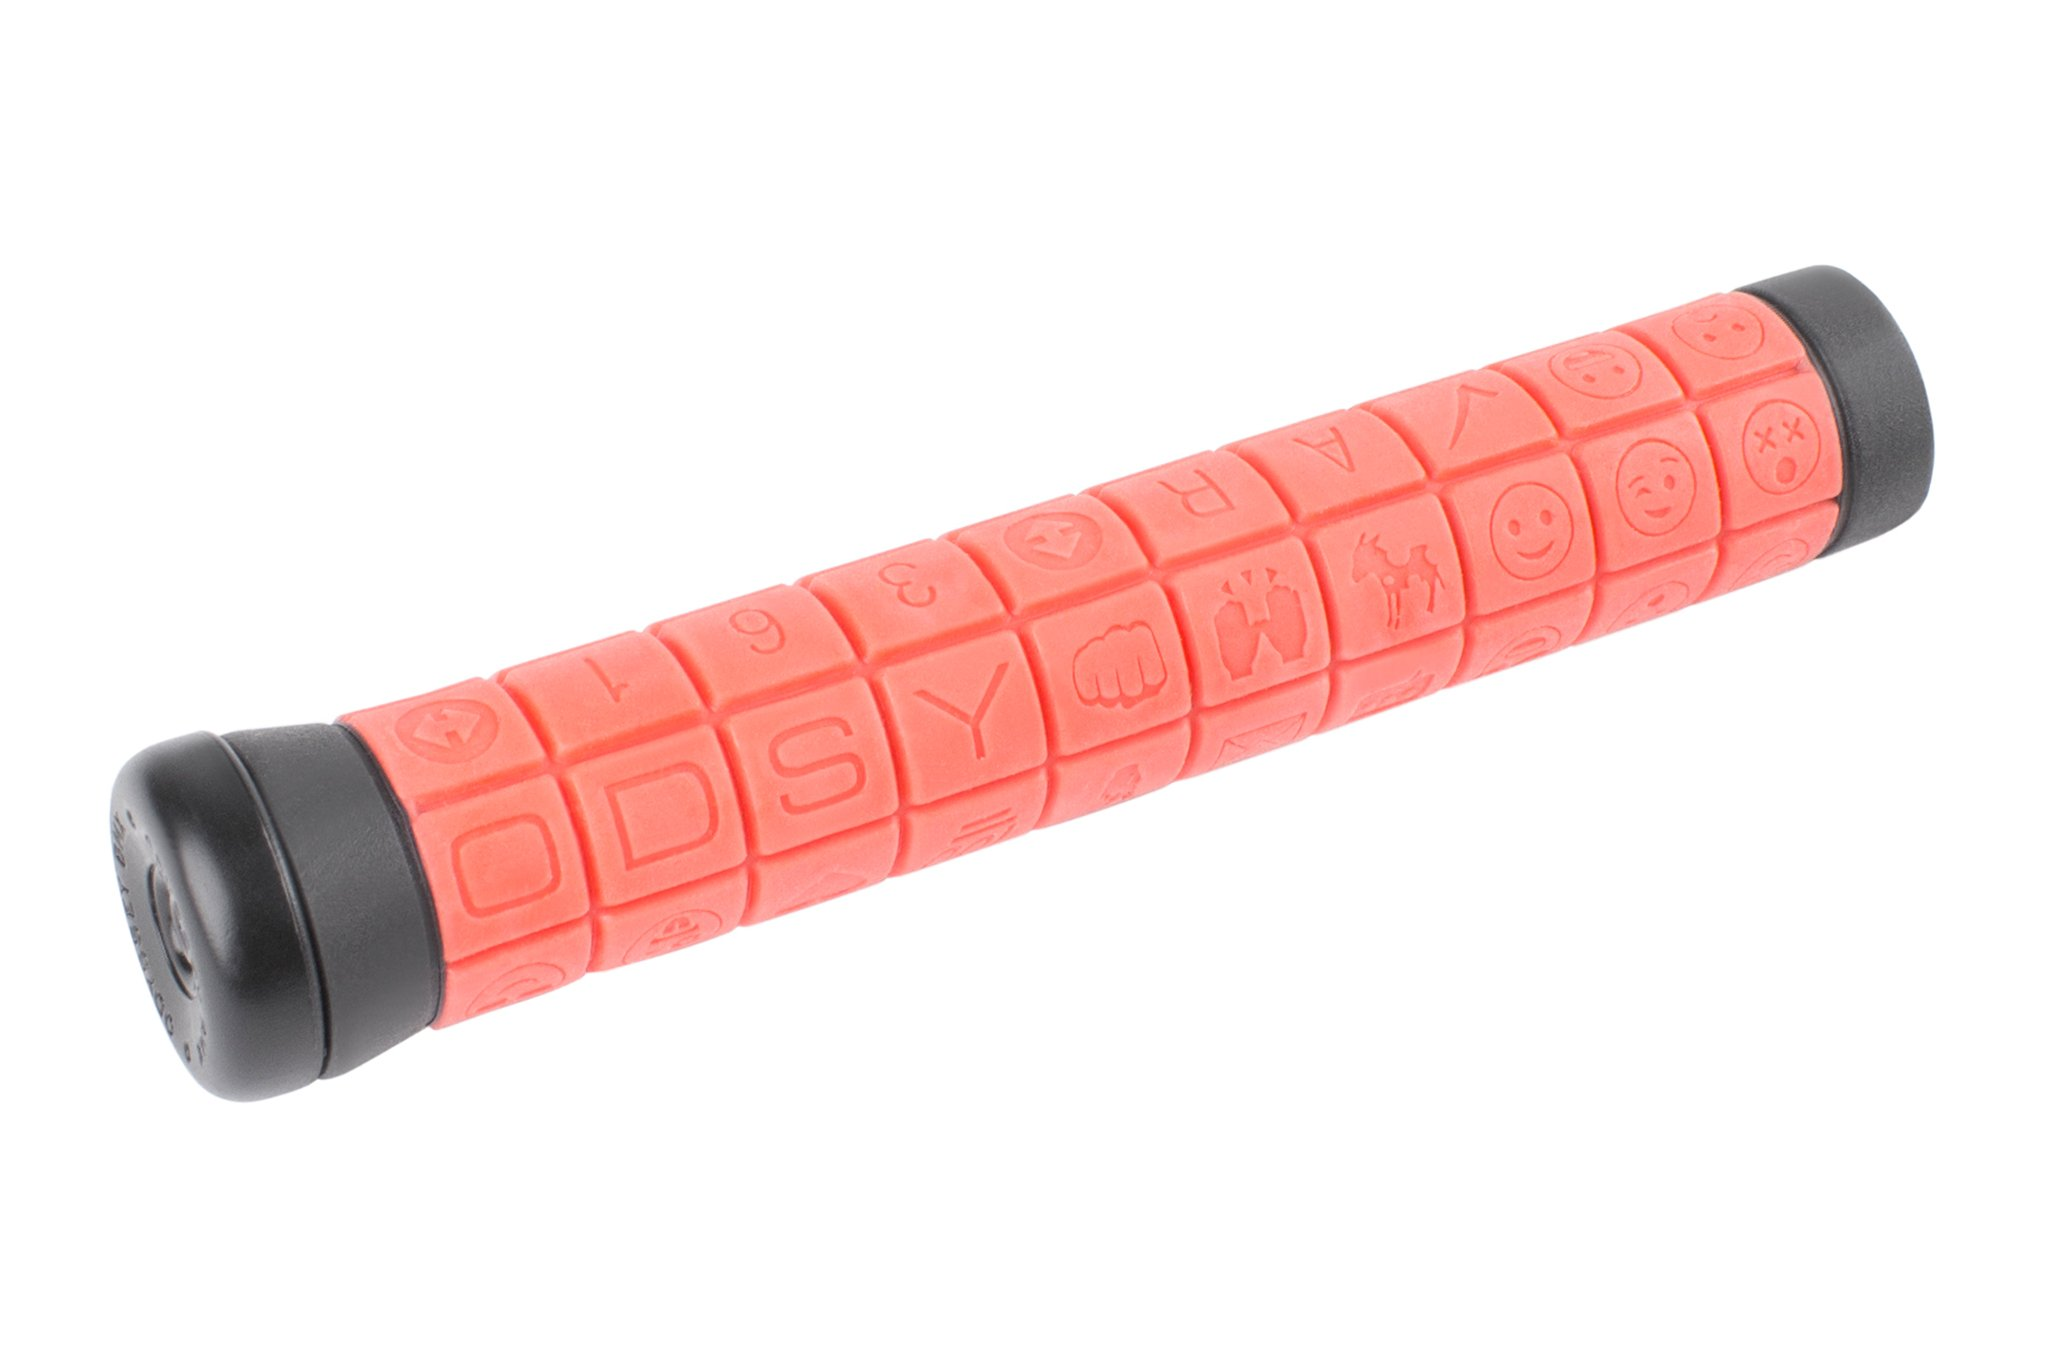 Odyssey BMX Keyboard Grip in Bright Red